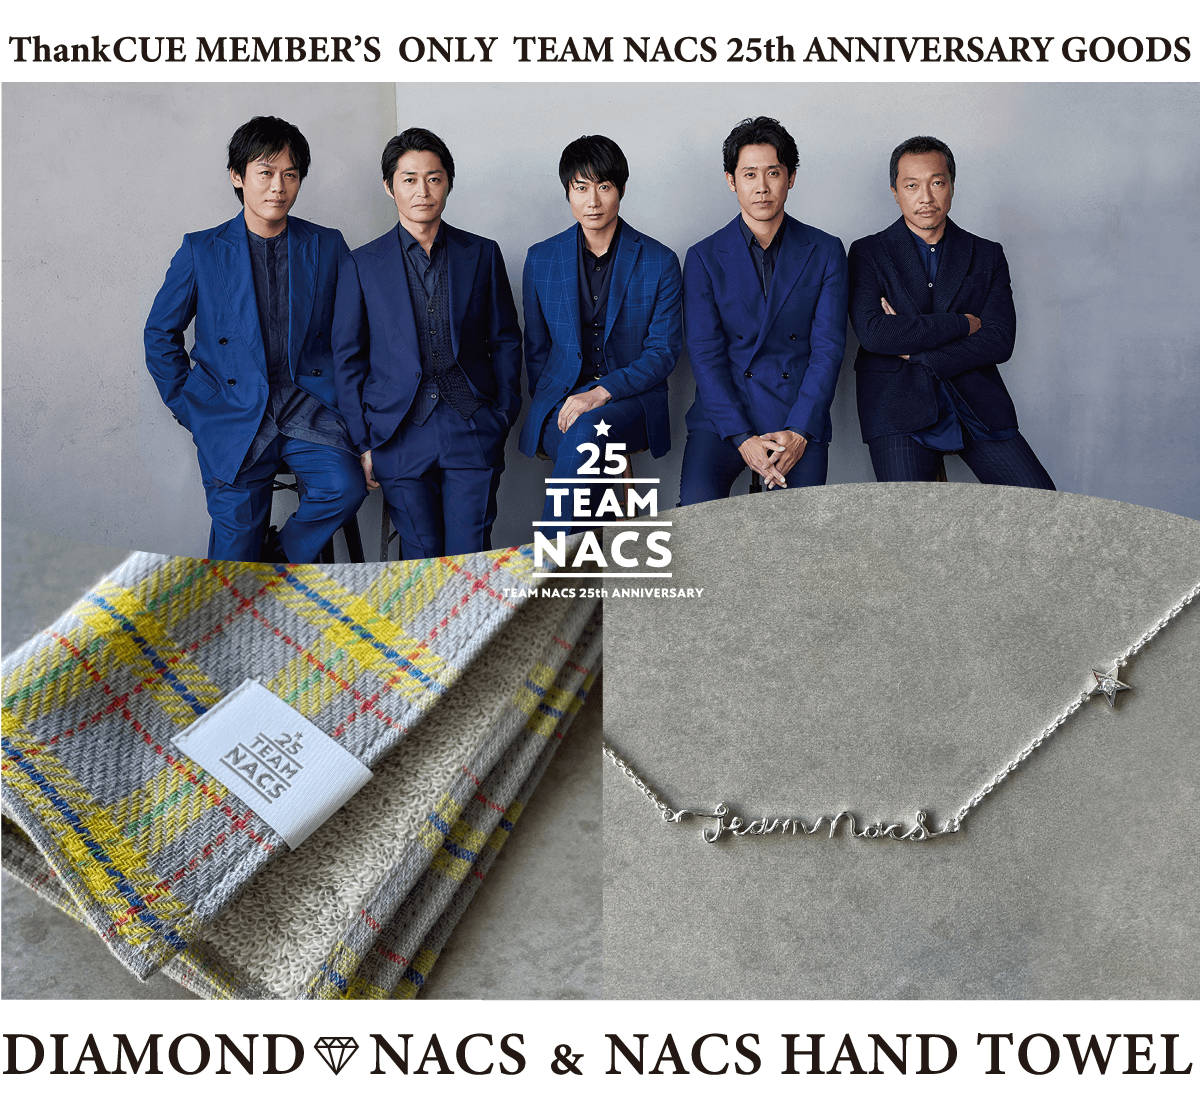 nacs25thgoods_info_top.png